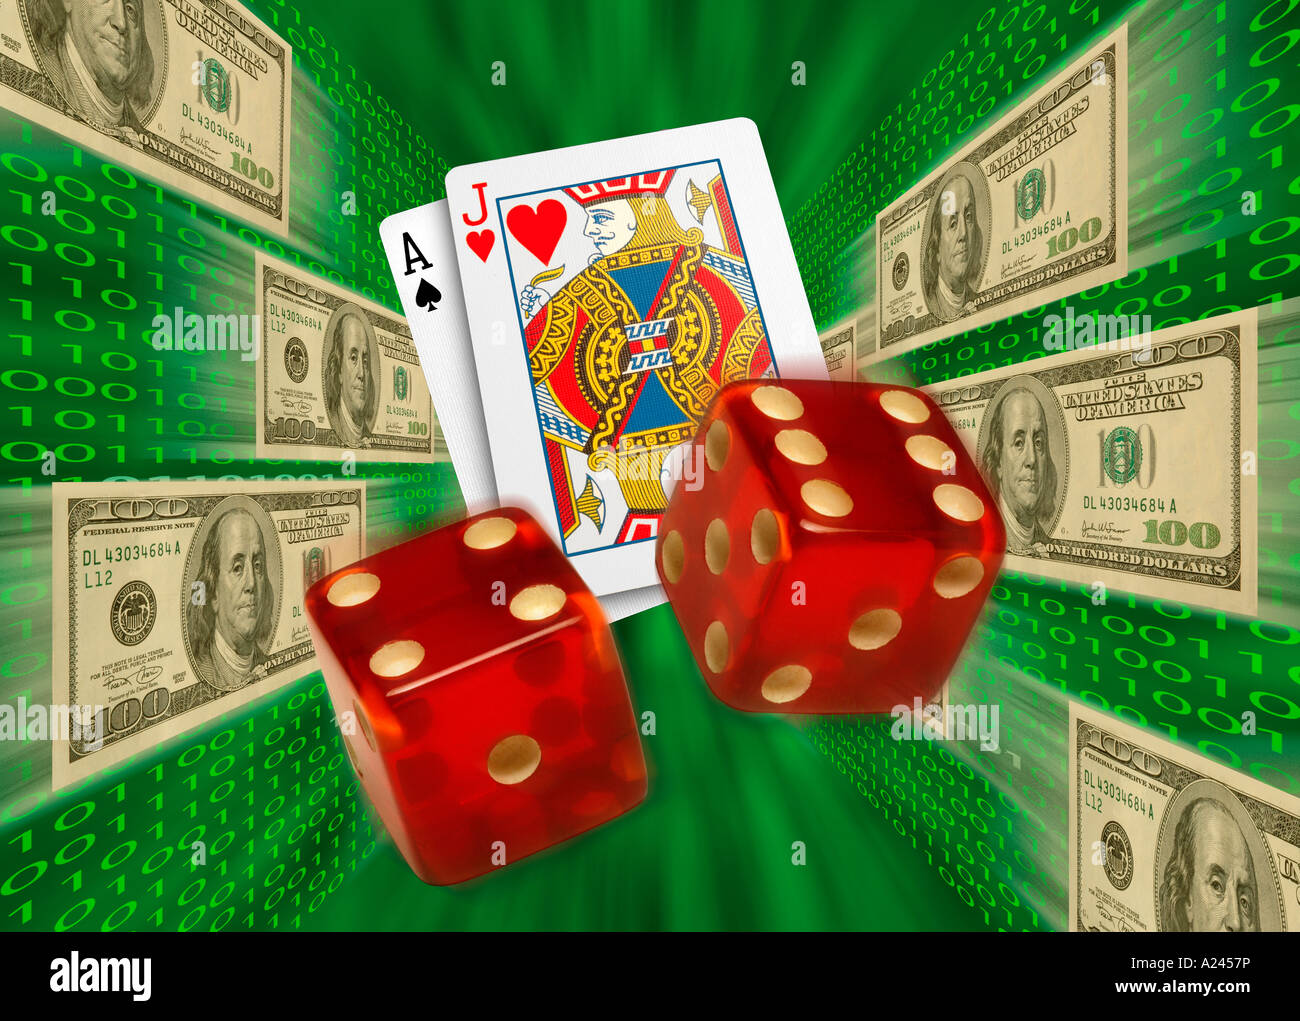 Cards and dice flying by $100 bills and binary code. Internet gambling - Stock Image